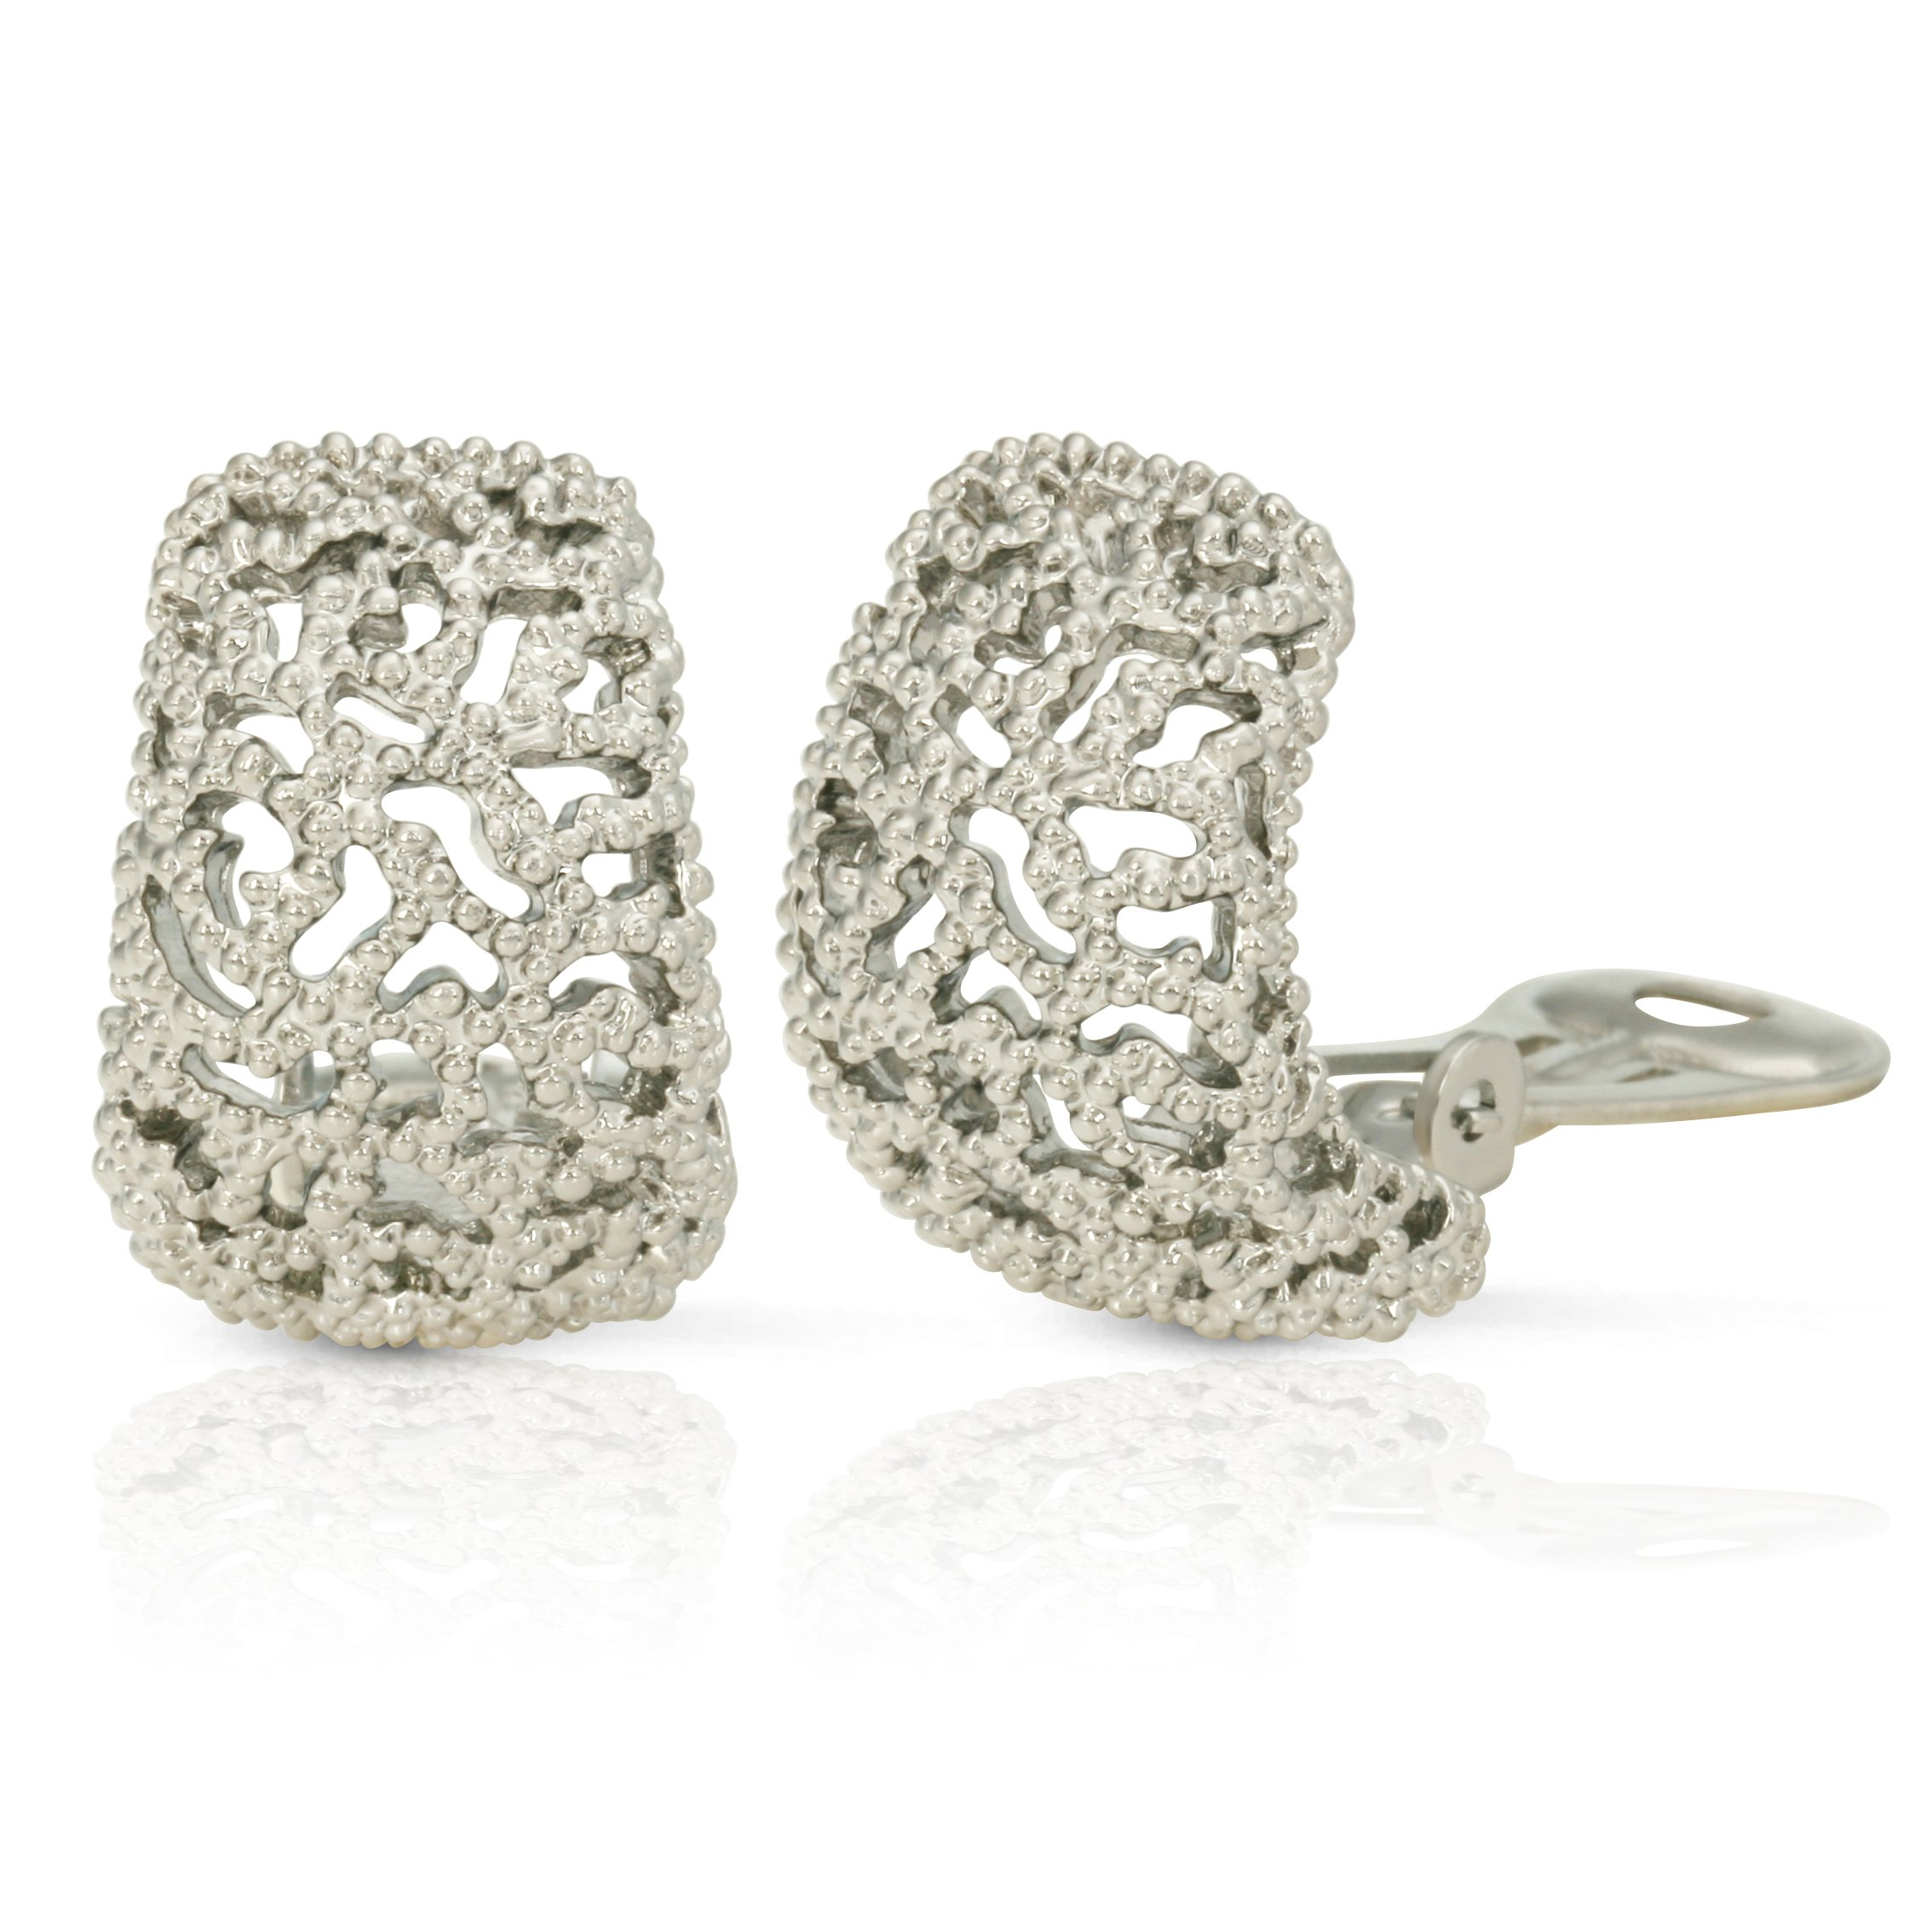 JanKuo Jewelry Rhodium Plated Vintage Style Semi Hoop Clip On Earrings by JanKuo Jewelry